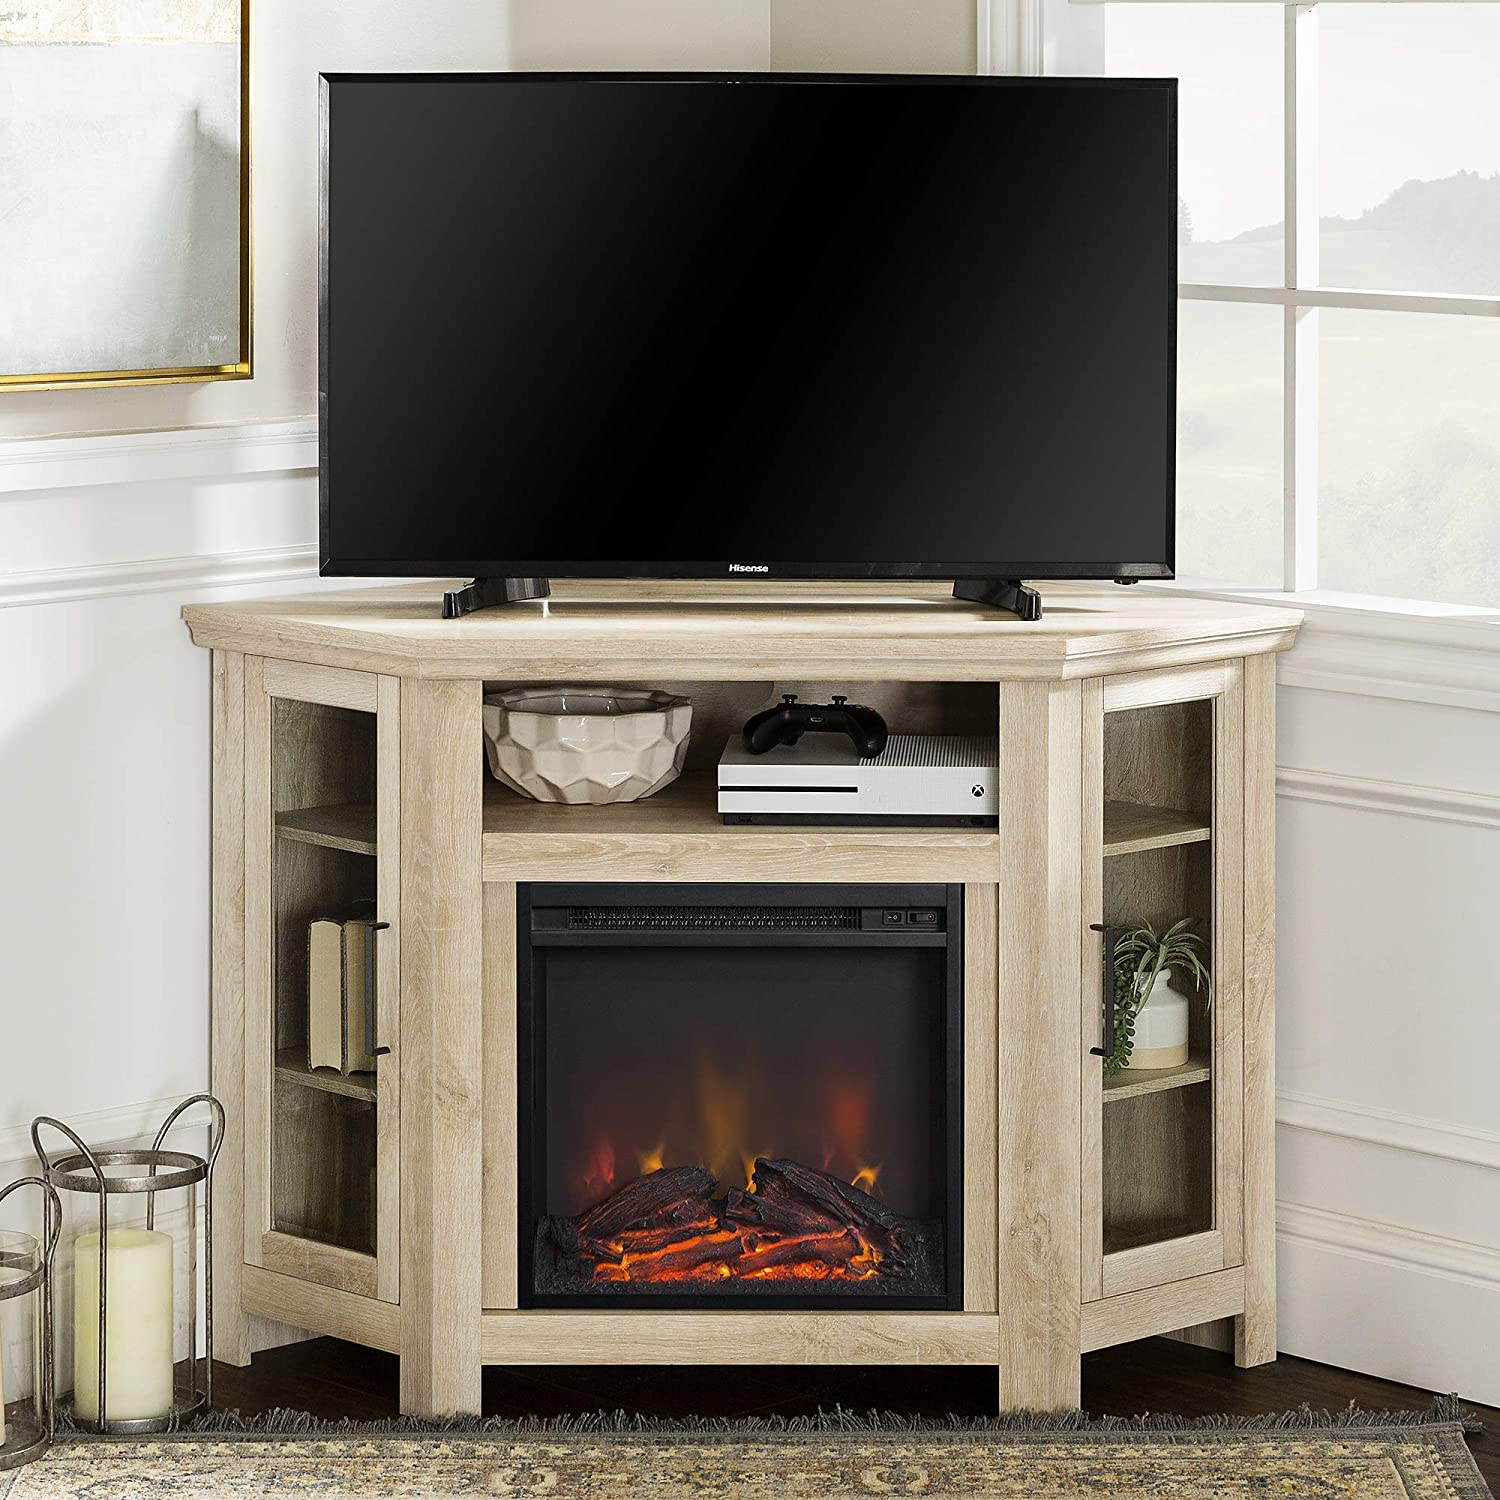 WE Furniture 48 Wood Corner Fireplace Media TV Stand Console – White Oak